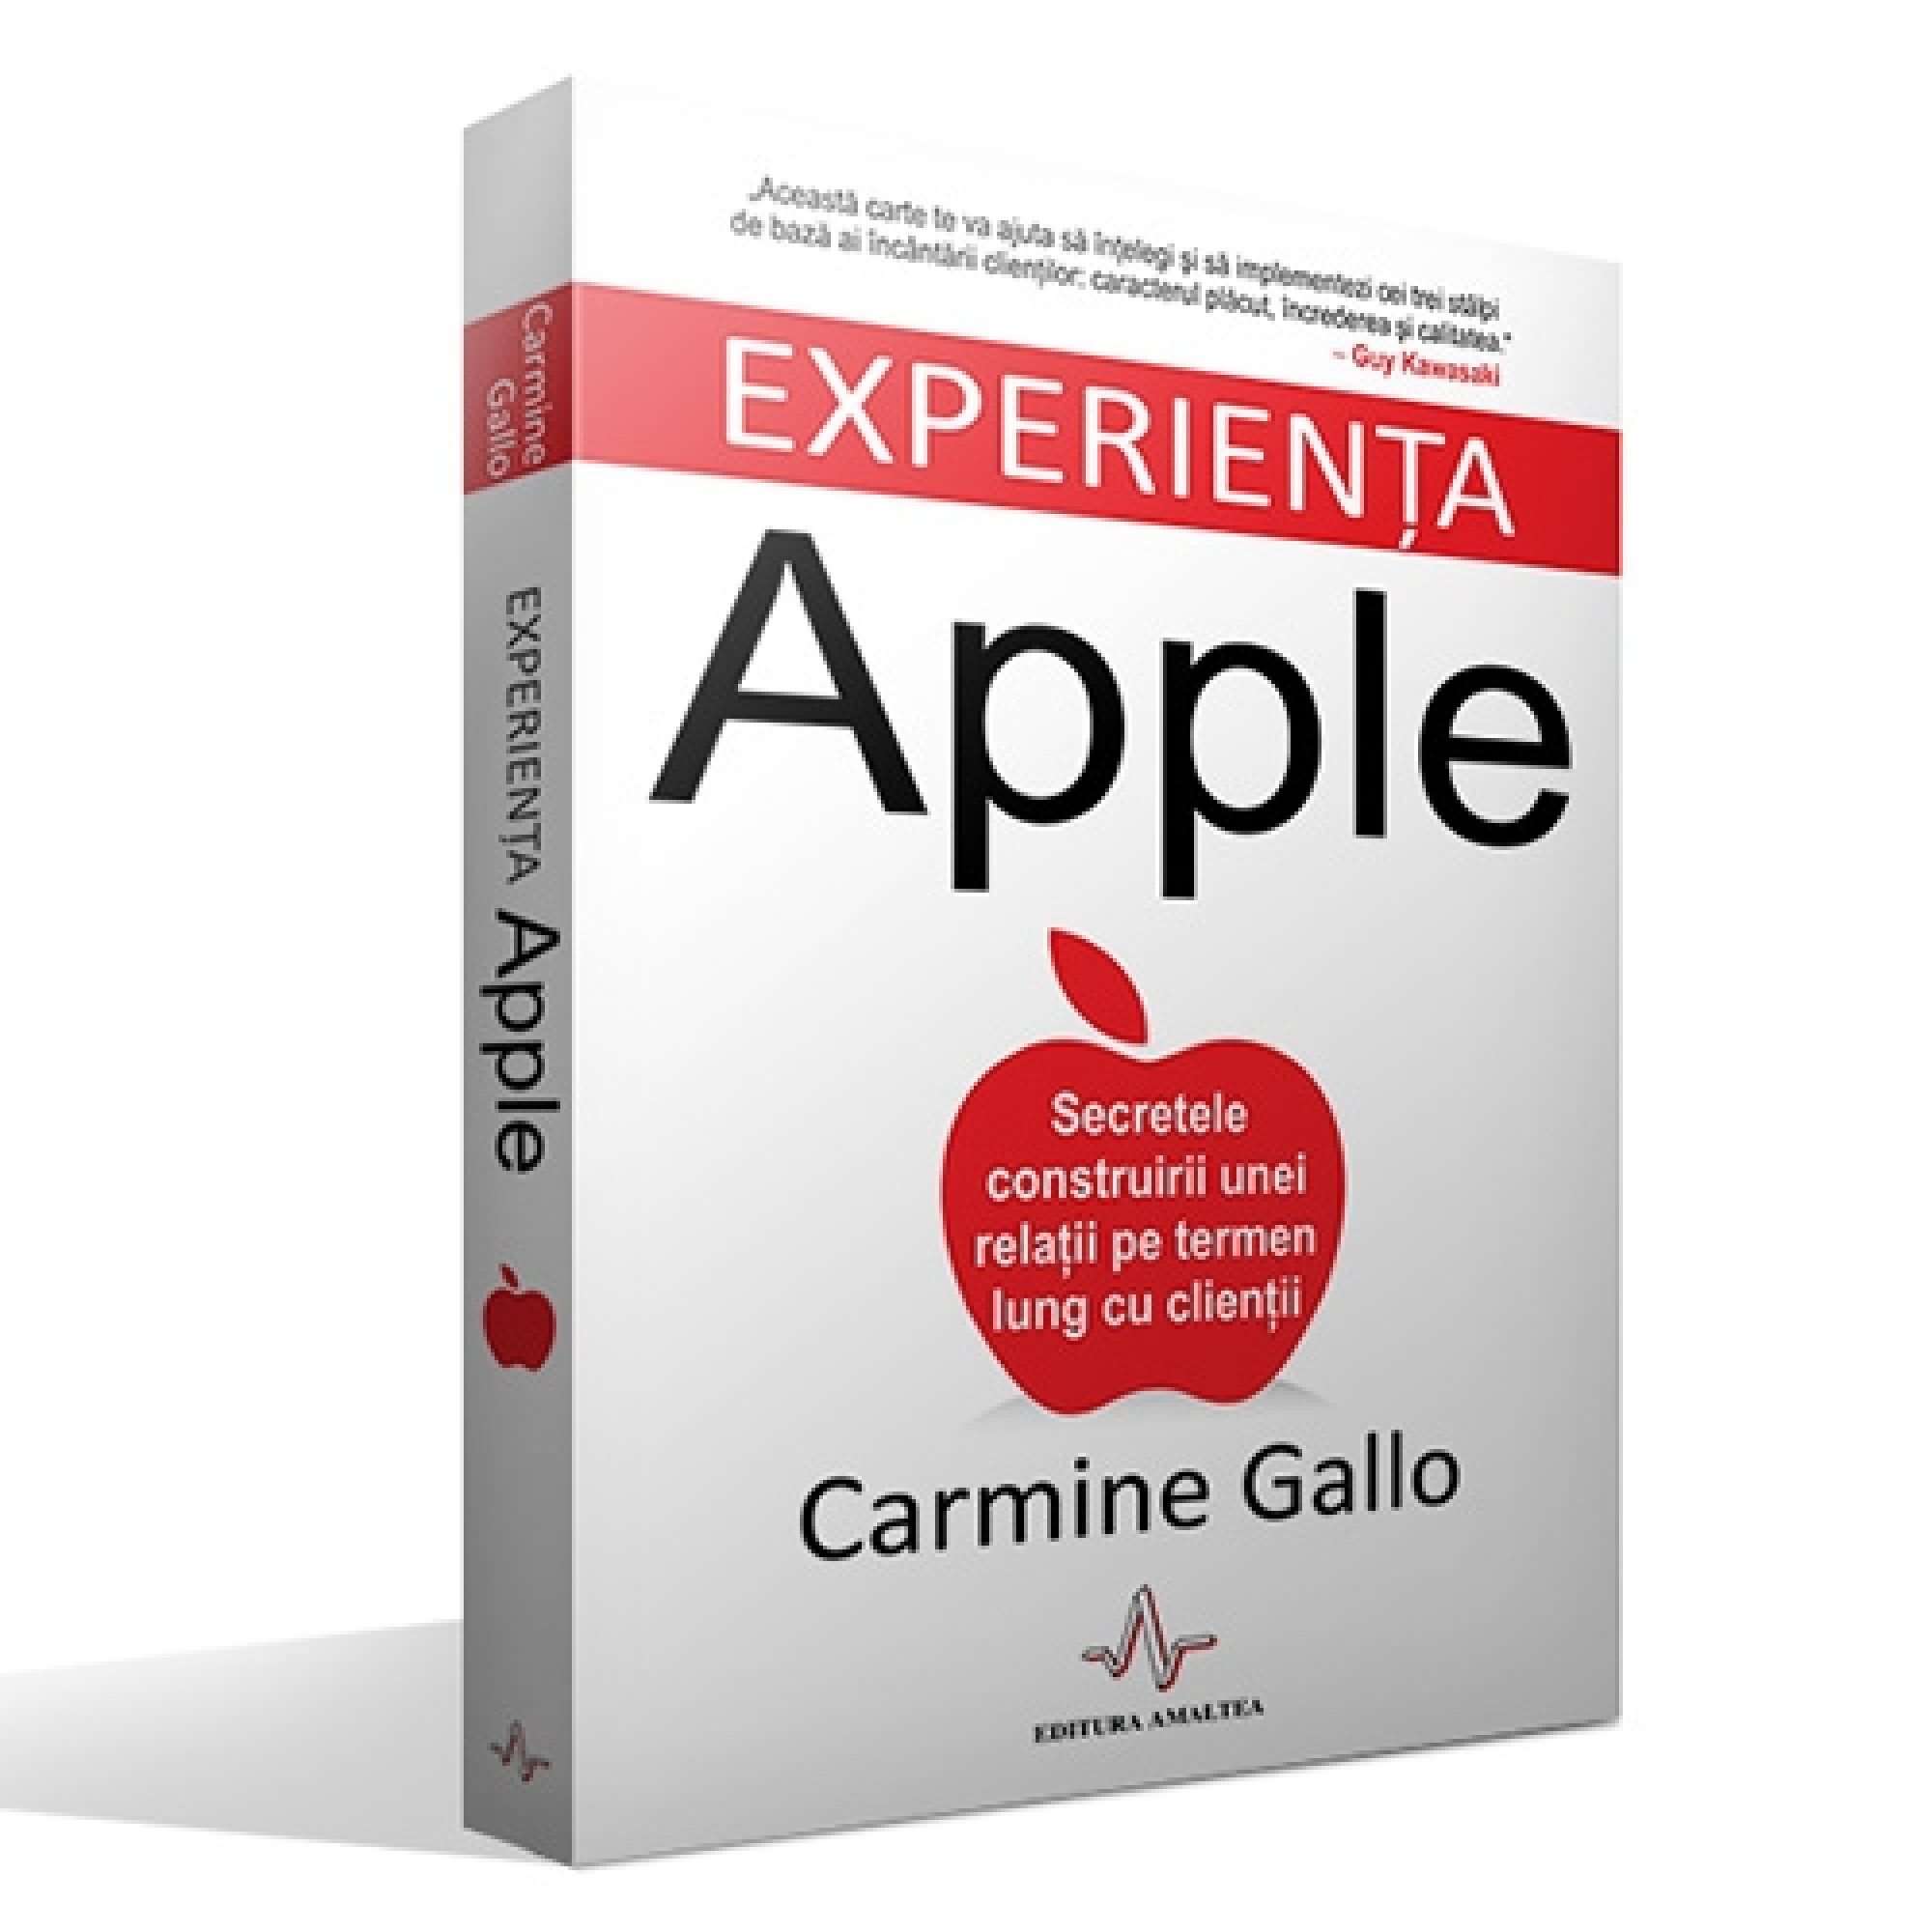 Experiența Apple; Carmine Gallo